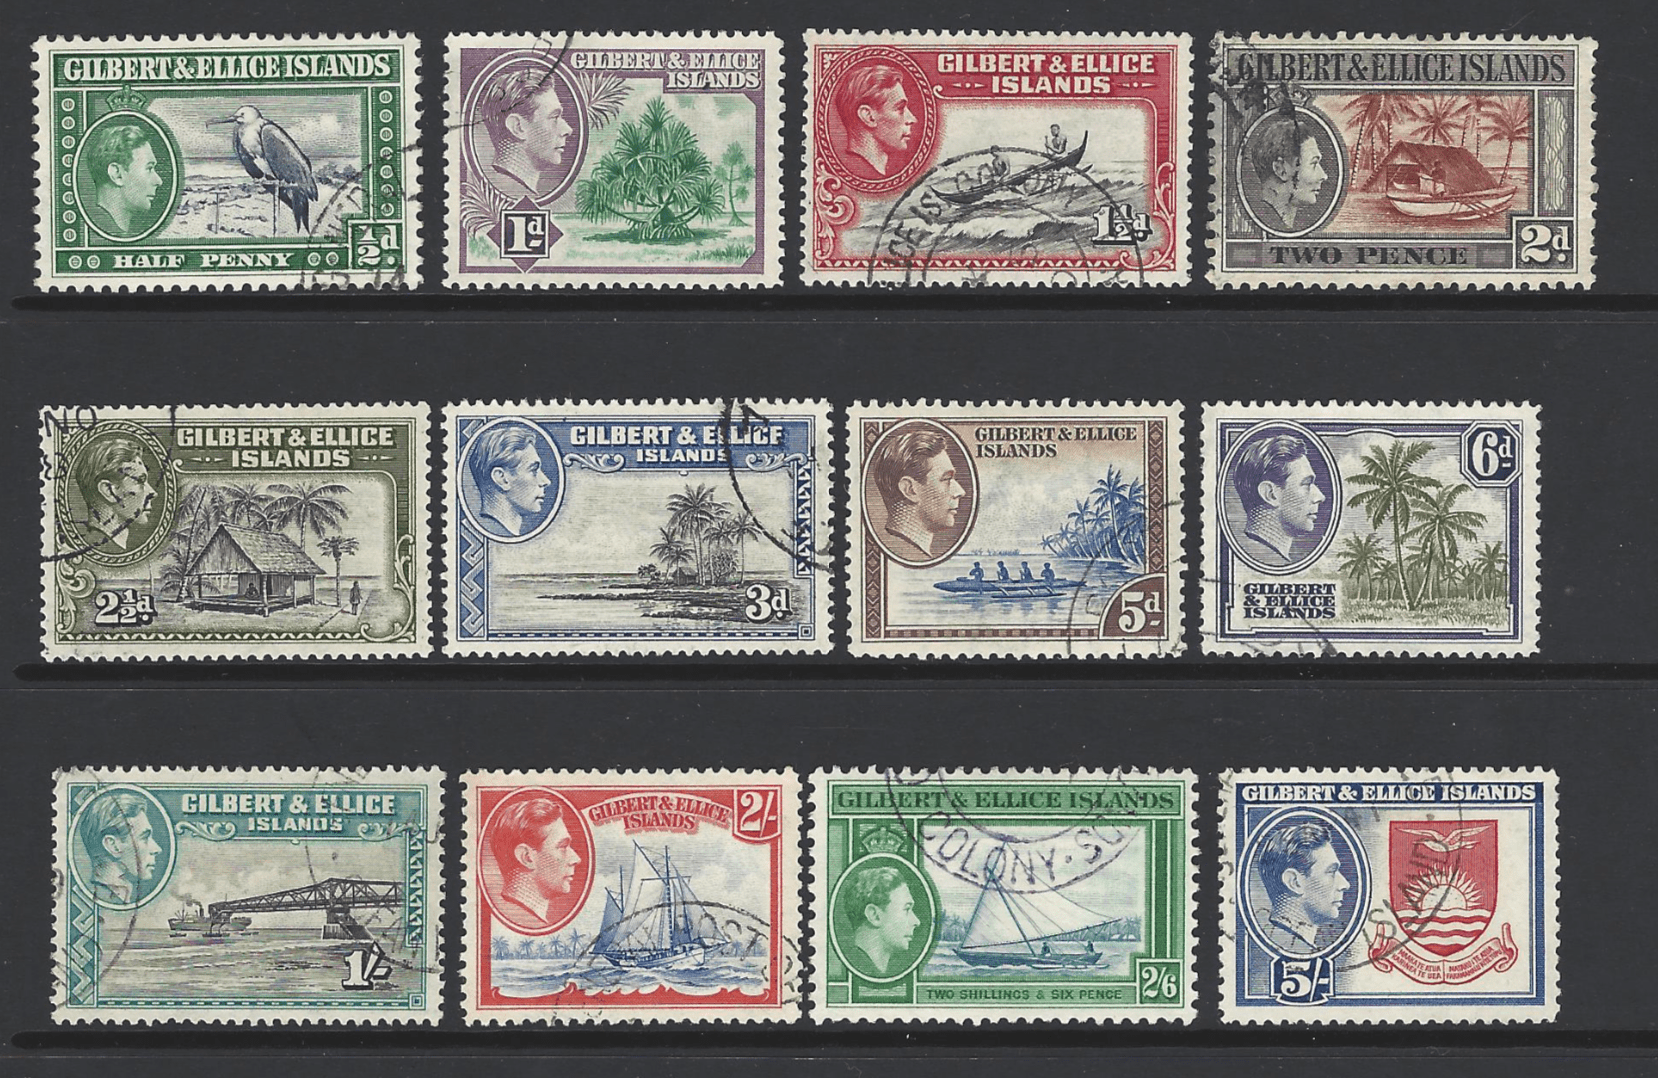 SG 43-54, Gilbert and Ellice Islands Stamps